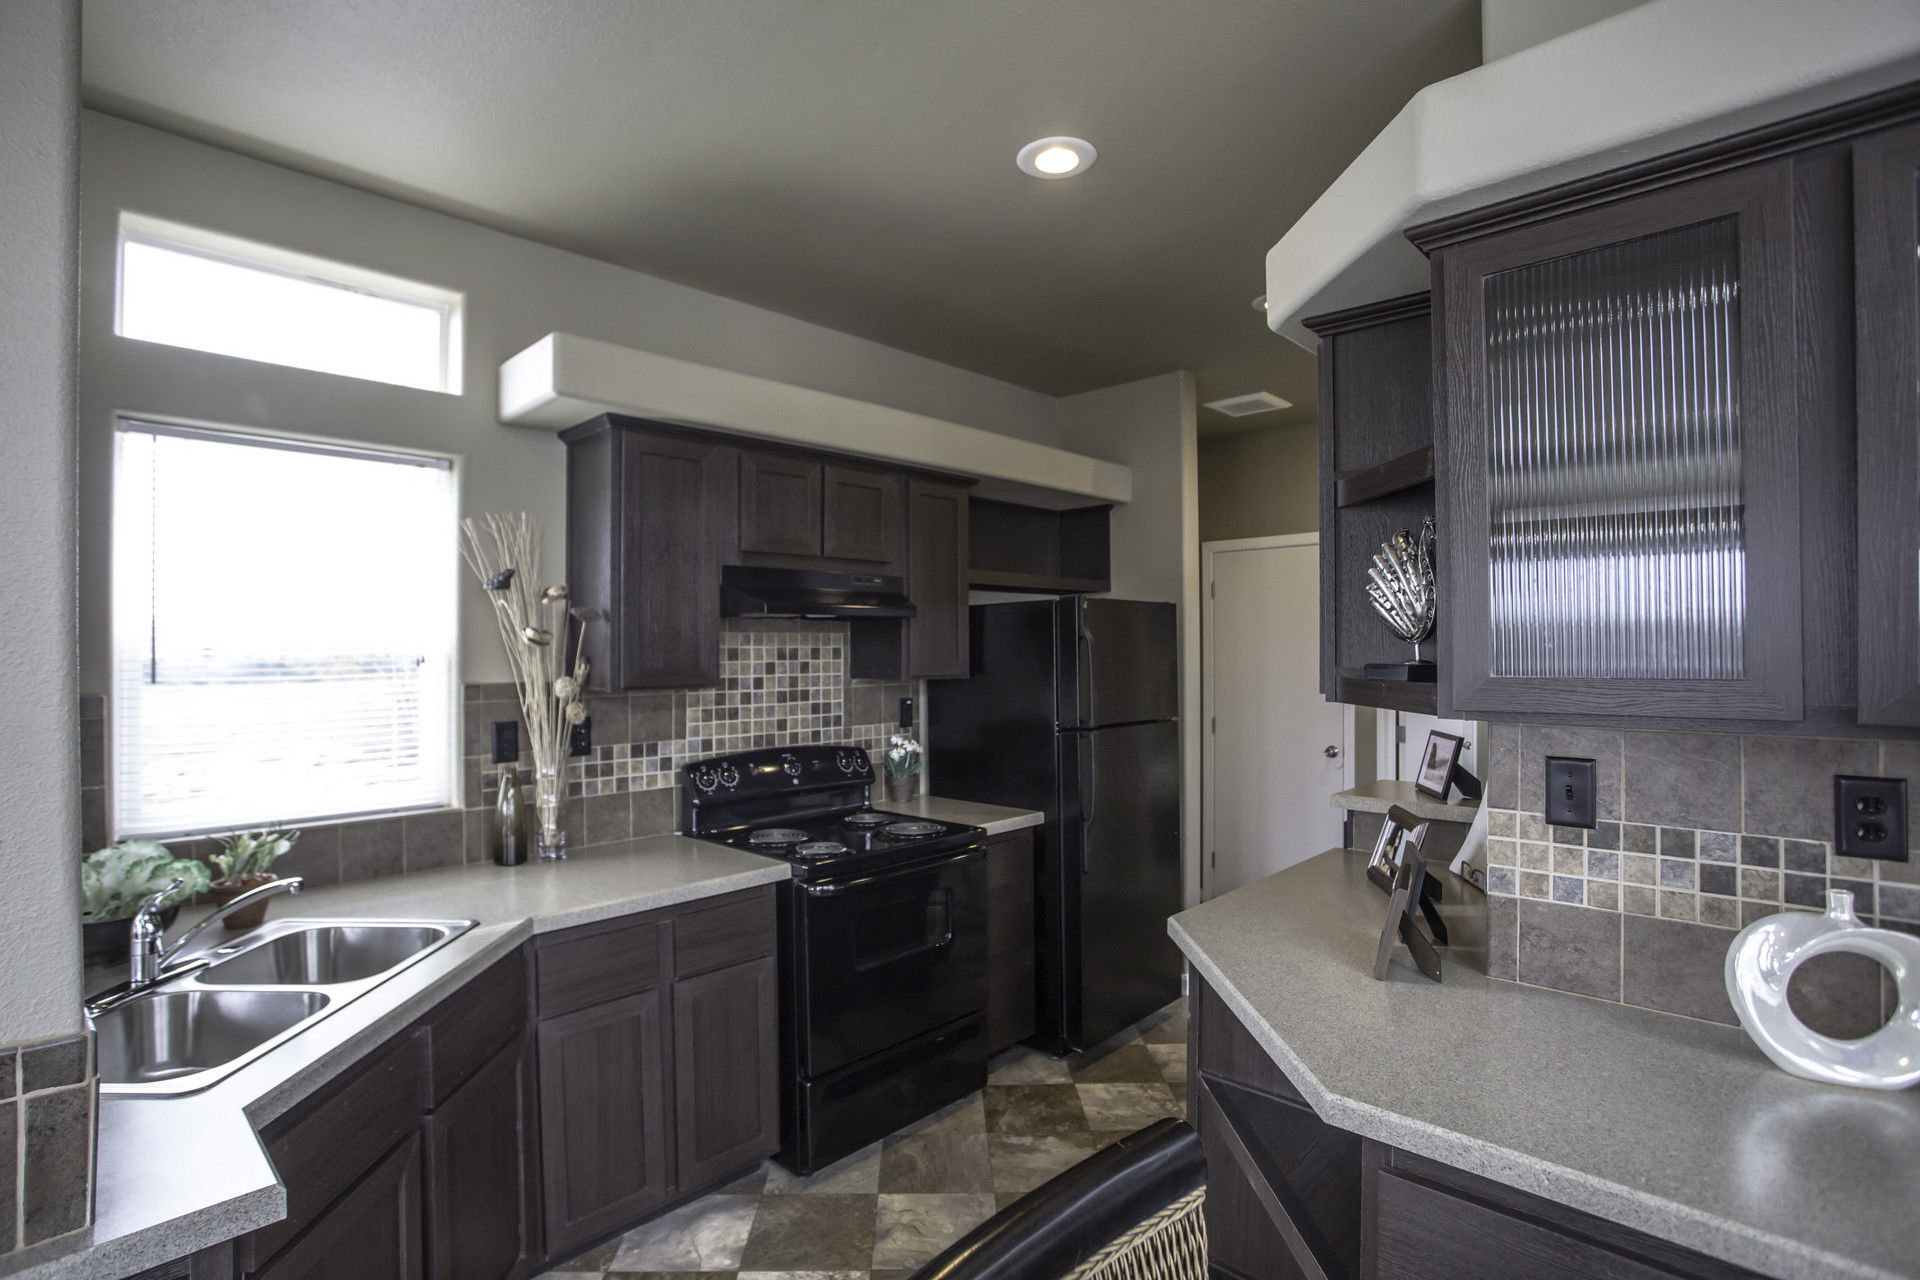 Palm Harbor Modular Homes >> Palm Harbor (Albany,OR) 1 Bedroom Manufactured Home ...